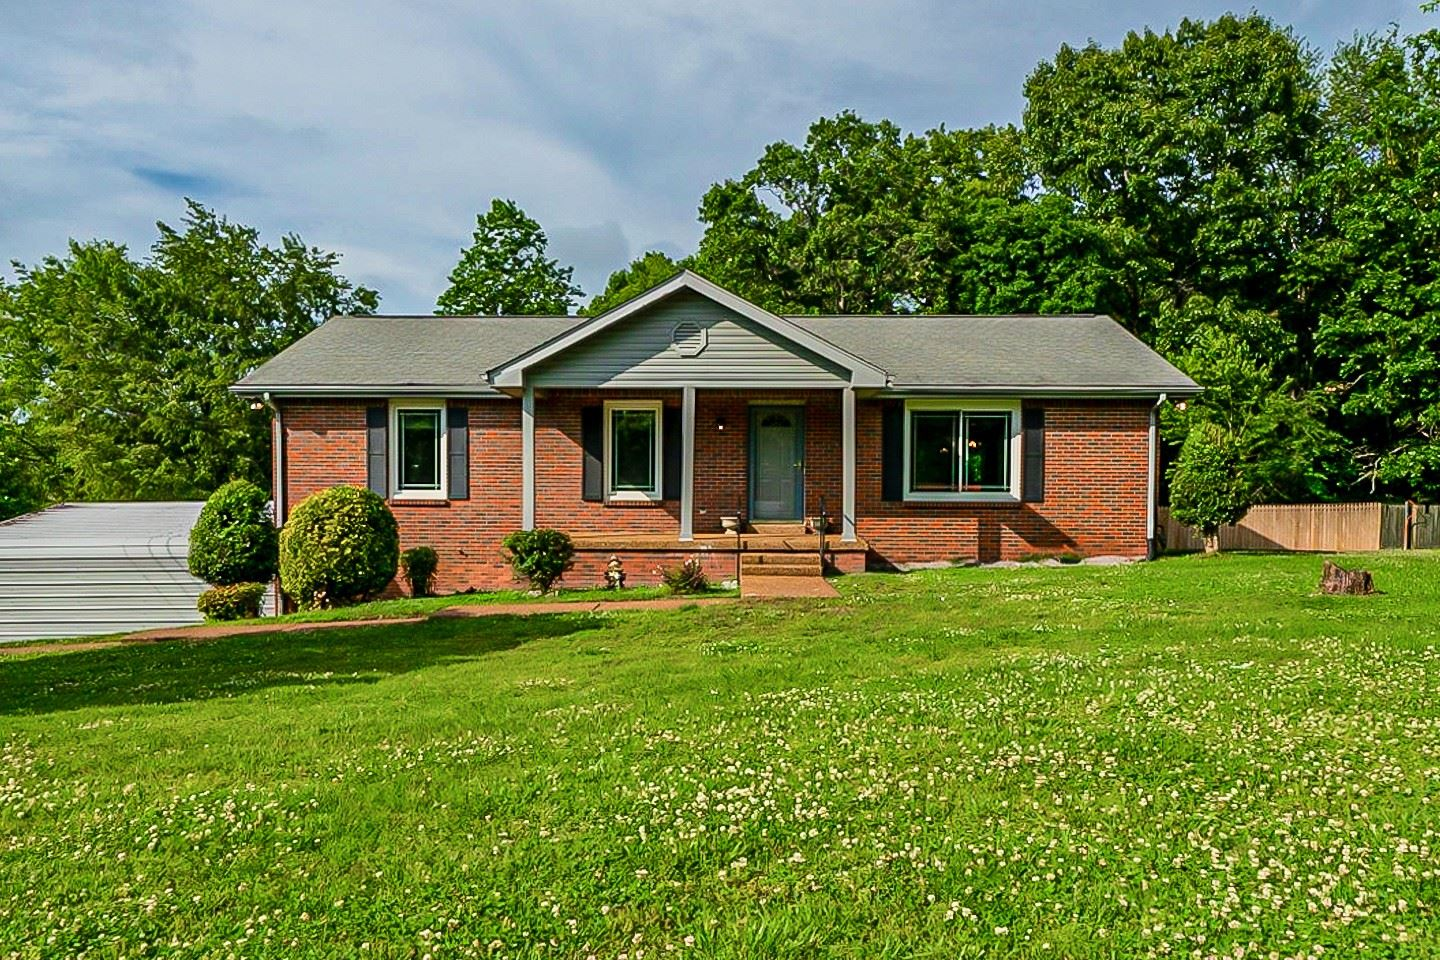 7212 Clearview Dr, Fairview, TN 37062 - MLS#: 2259412